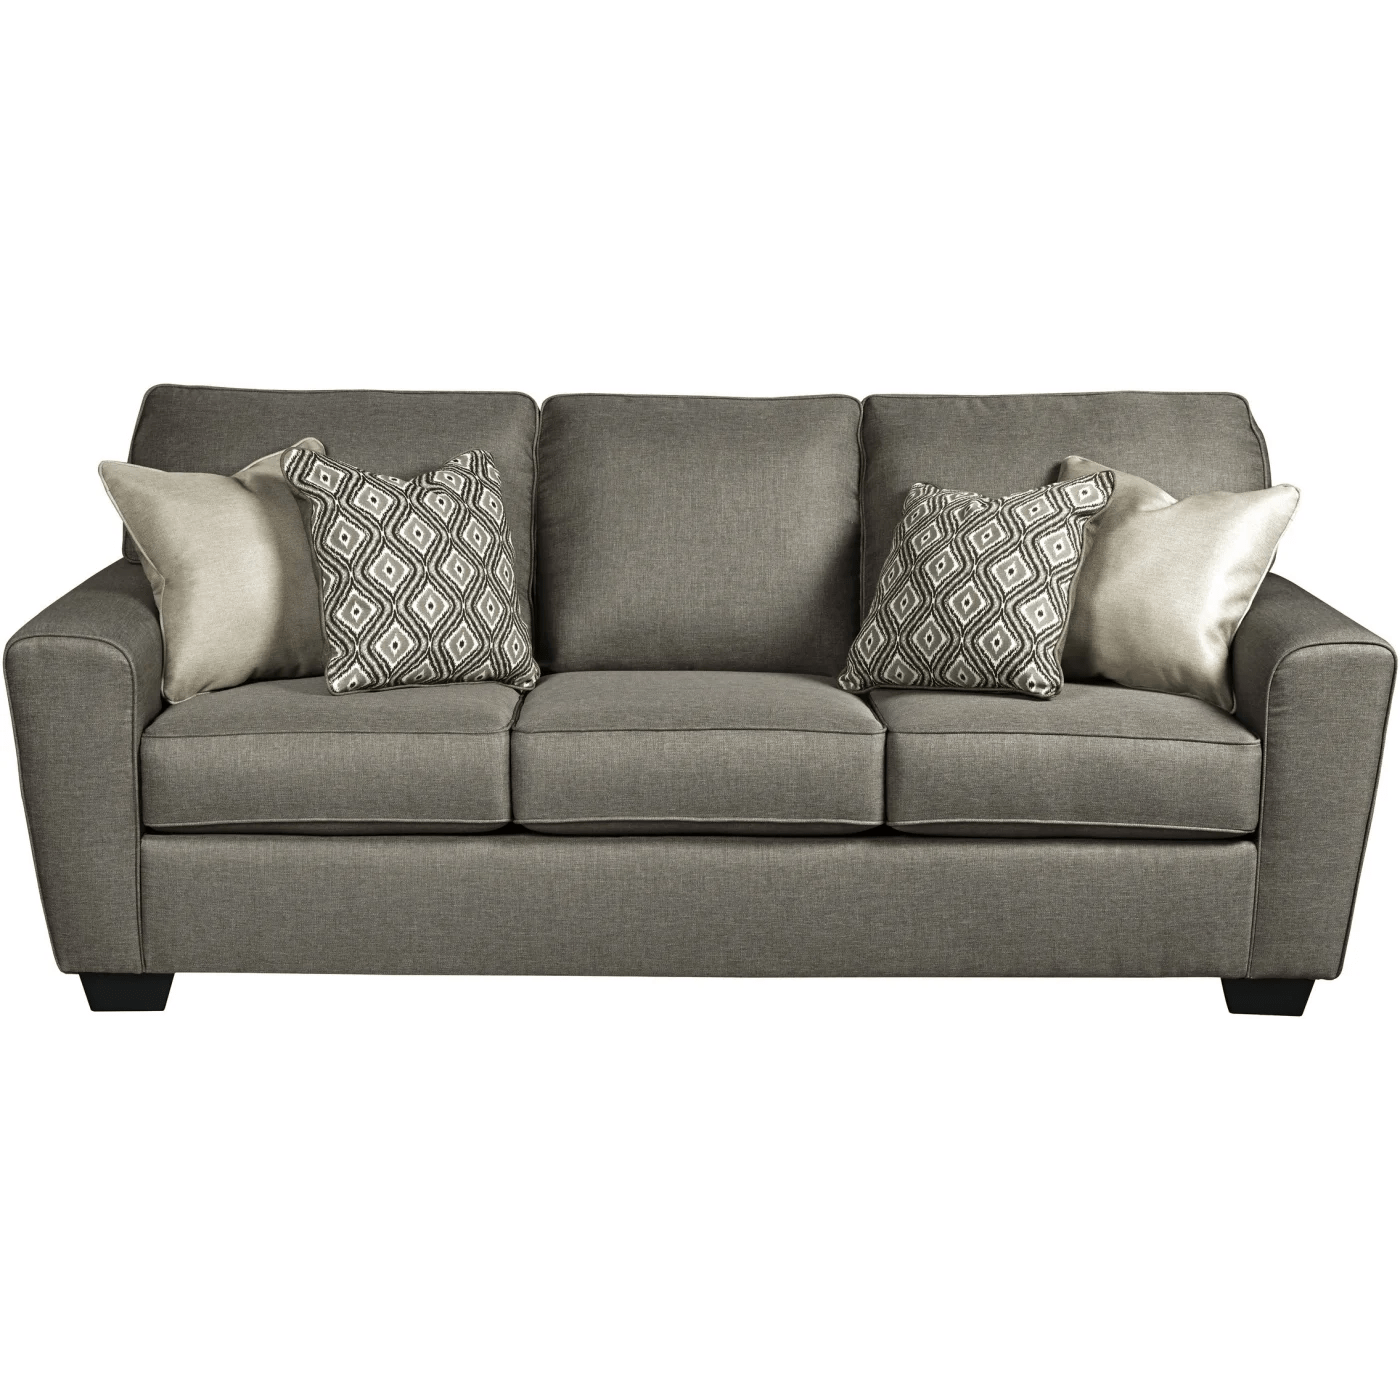 Emelen Sofa And Loveseat Emelen Sofa And Loveseat Benchcraft Emelen Transitional Sofa With